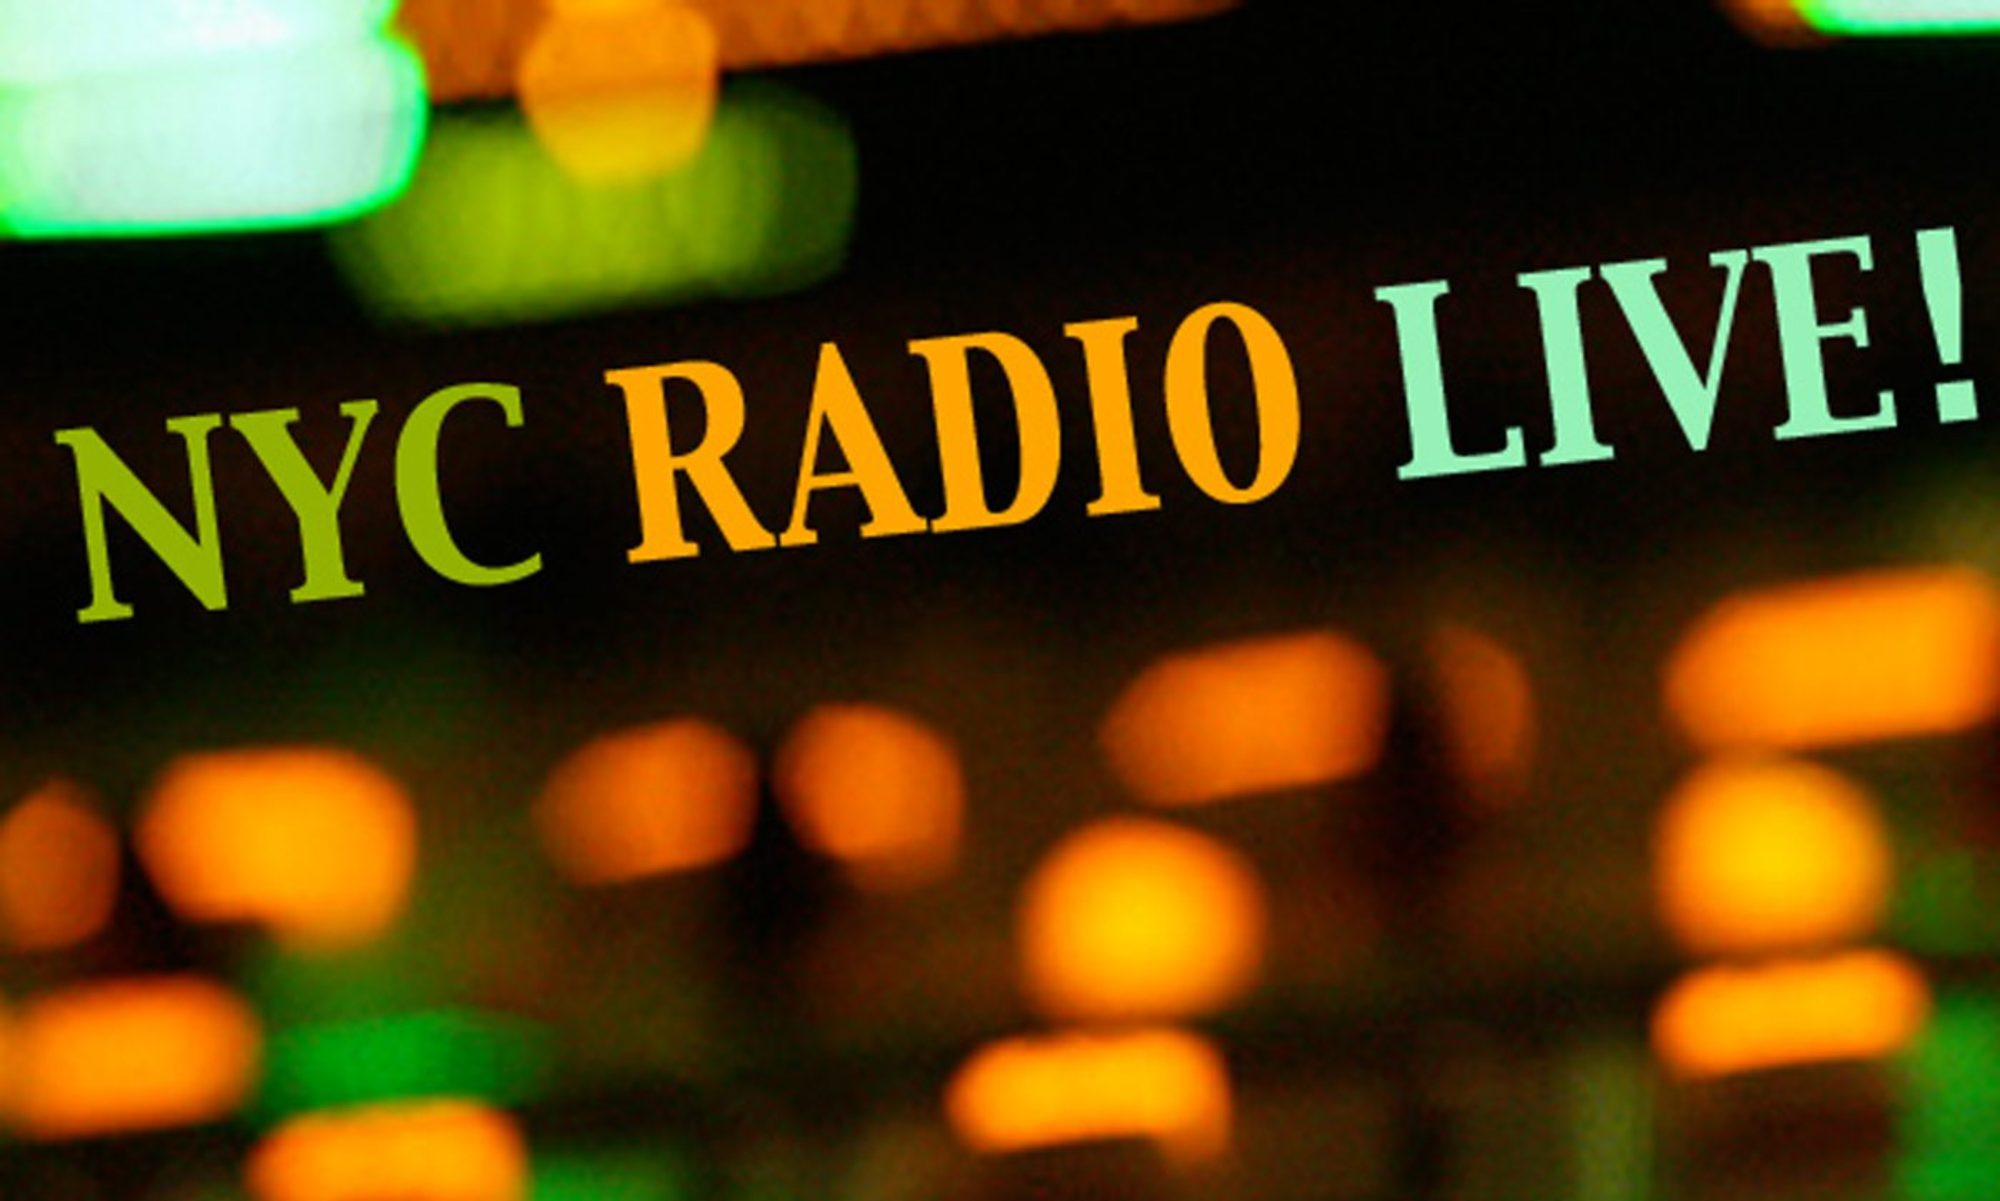 NYC RADIO LIVE